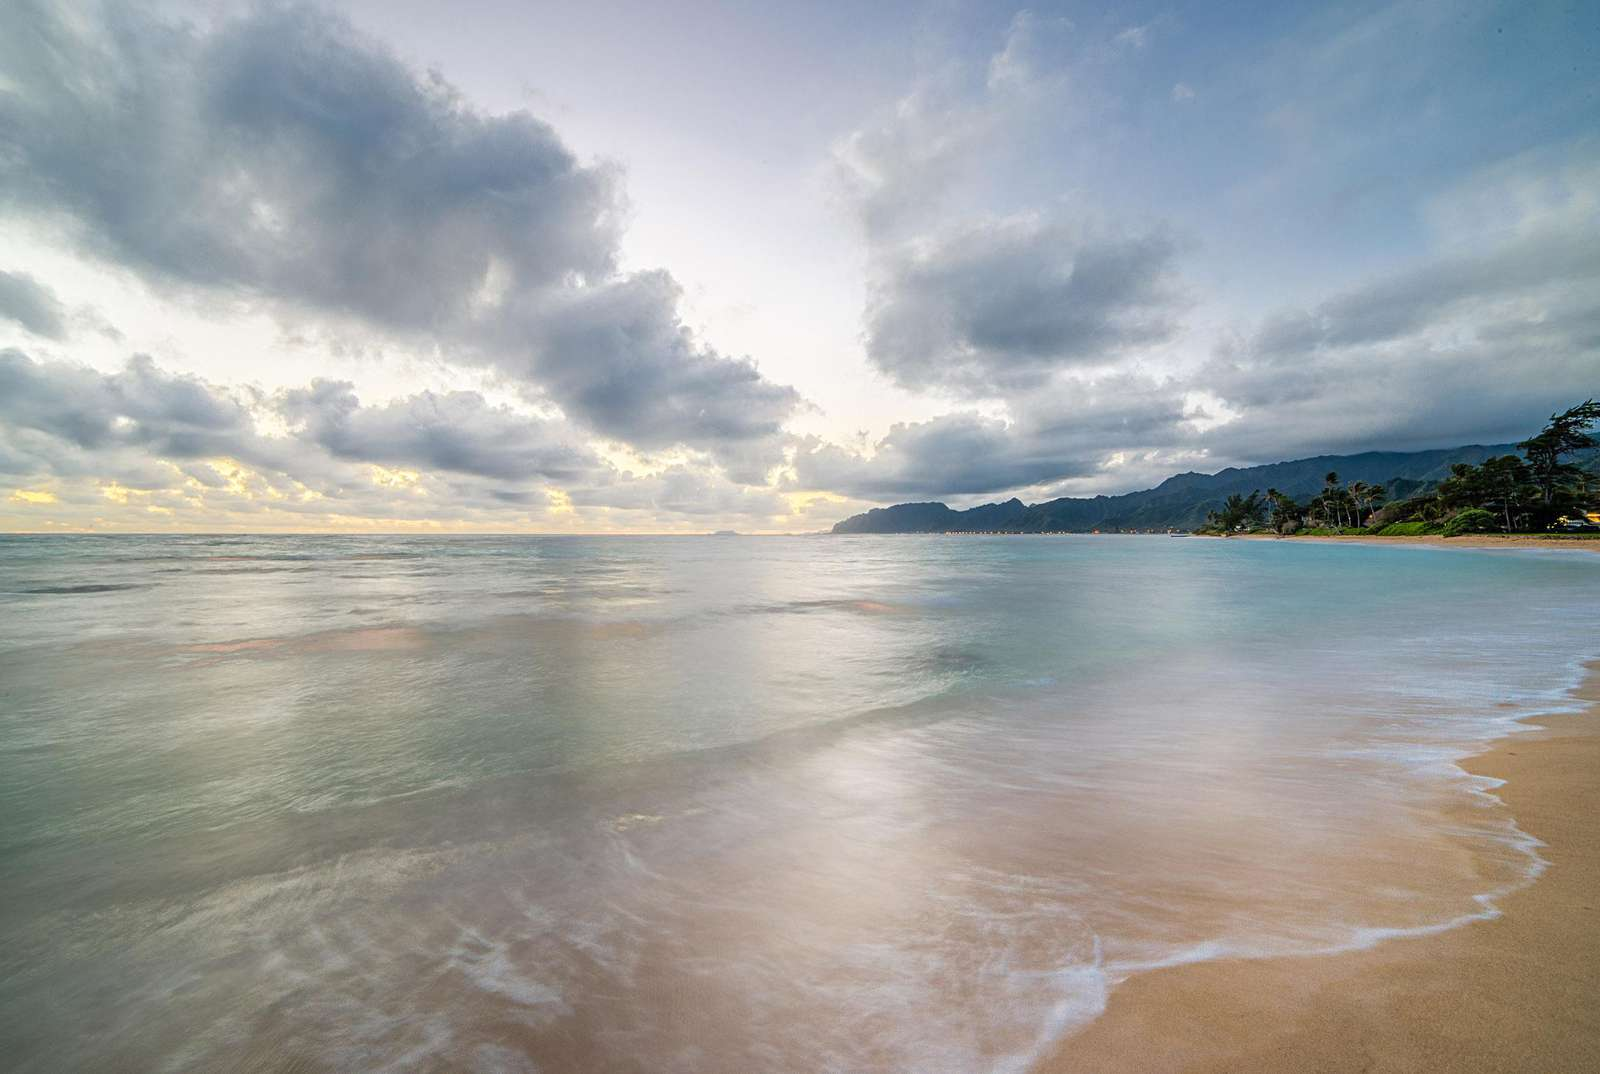 view of beachfront at dawn on calm morning